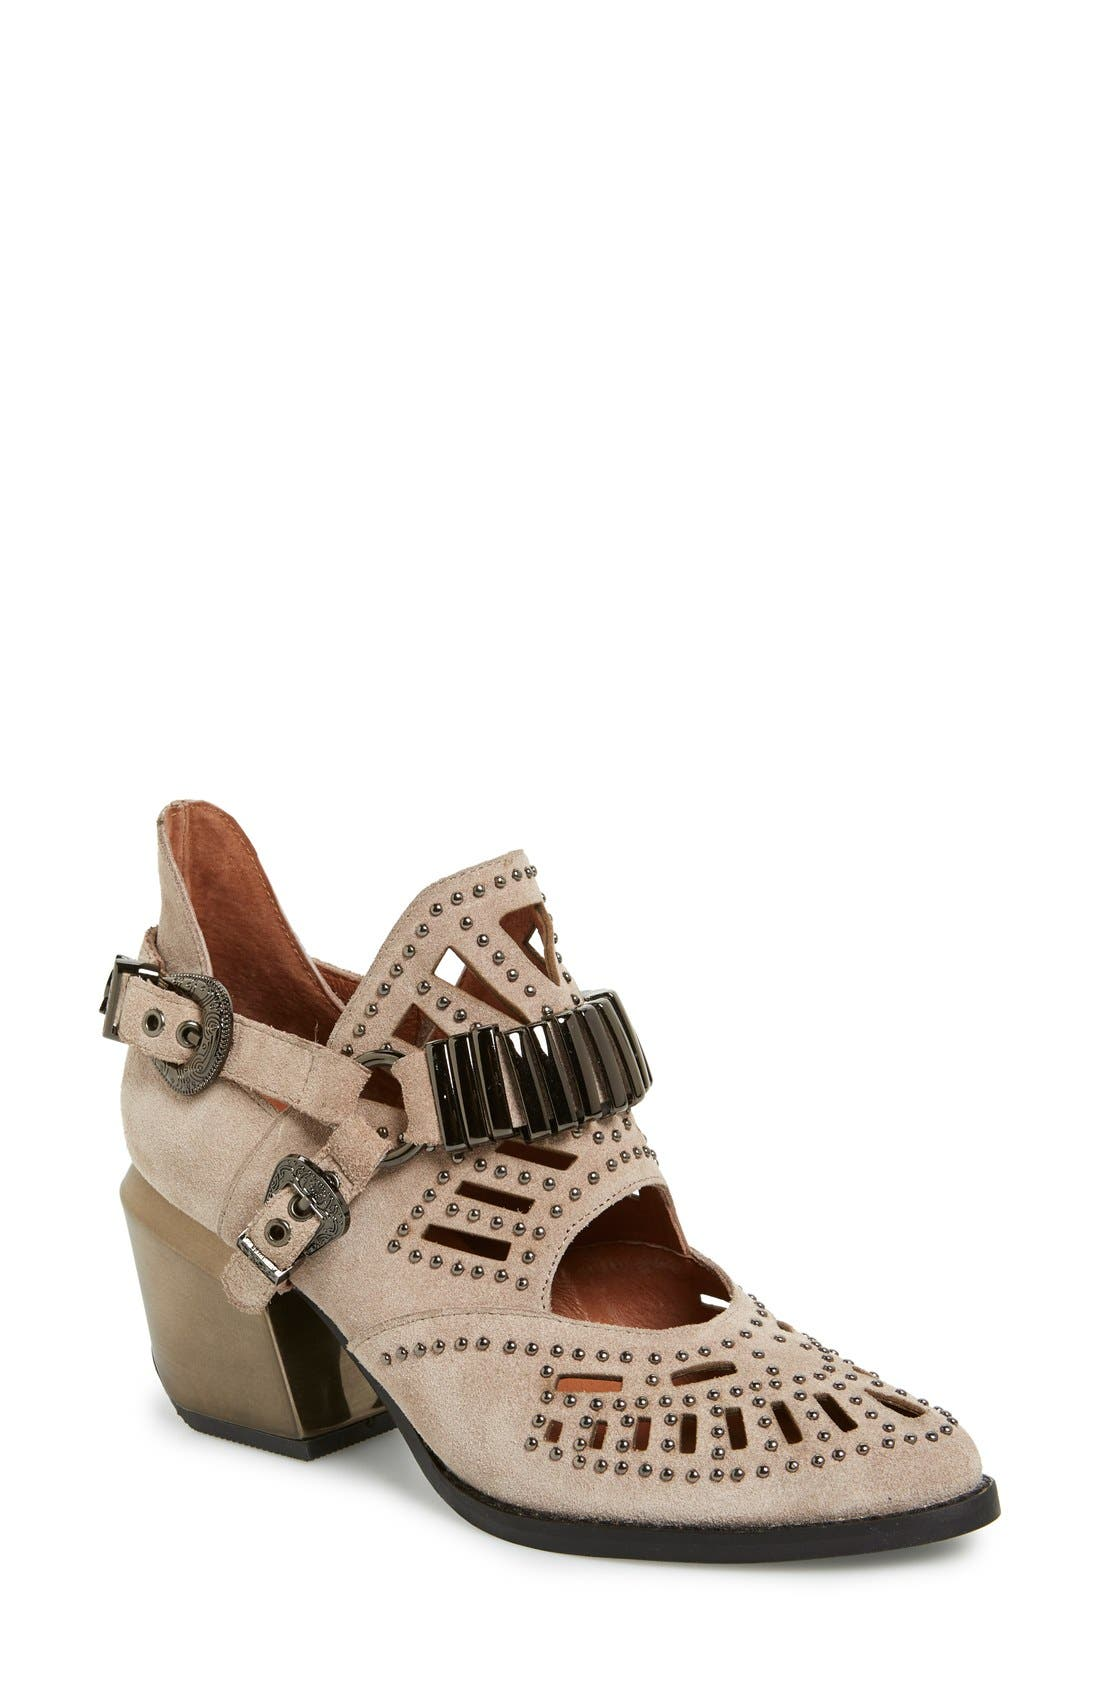 Alternate Image 1 Selected - Jeffrey Campbell 'Calhoun' Ankle Boot (Women)